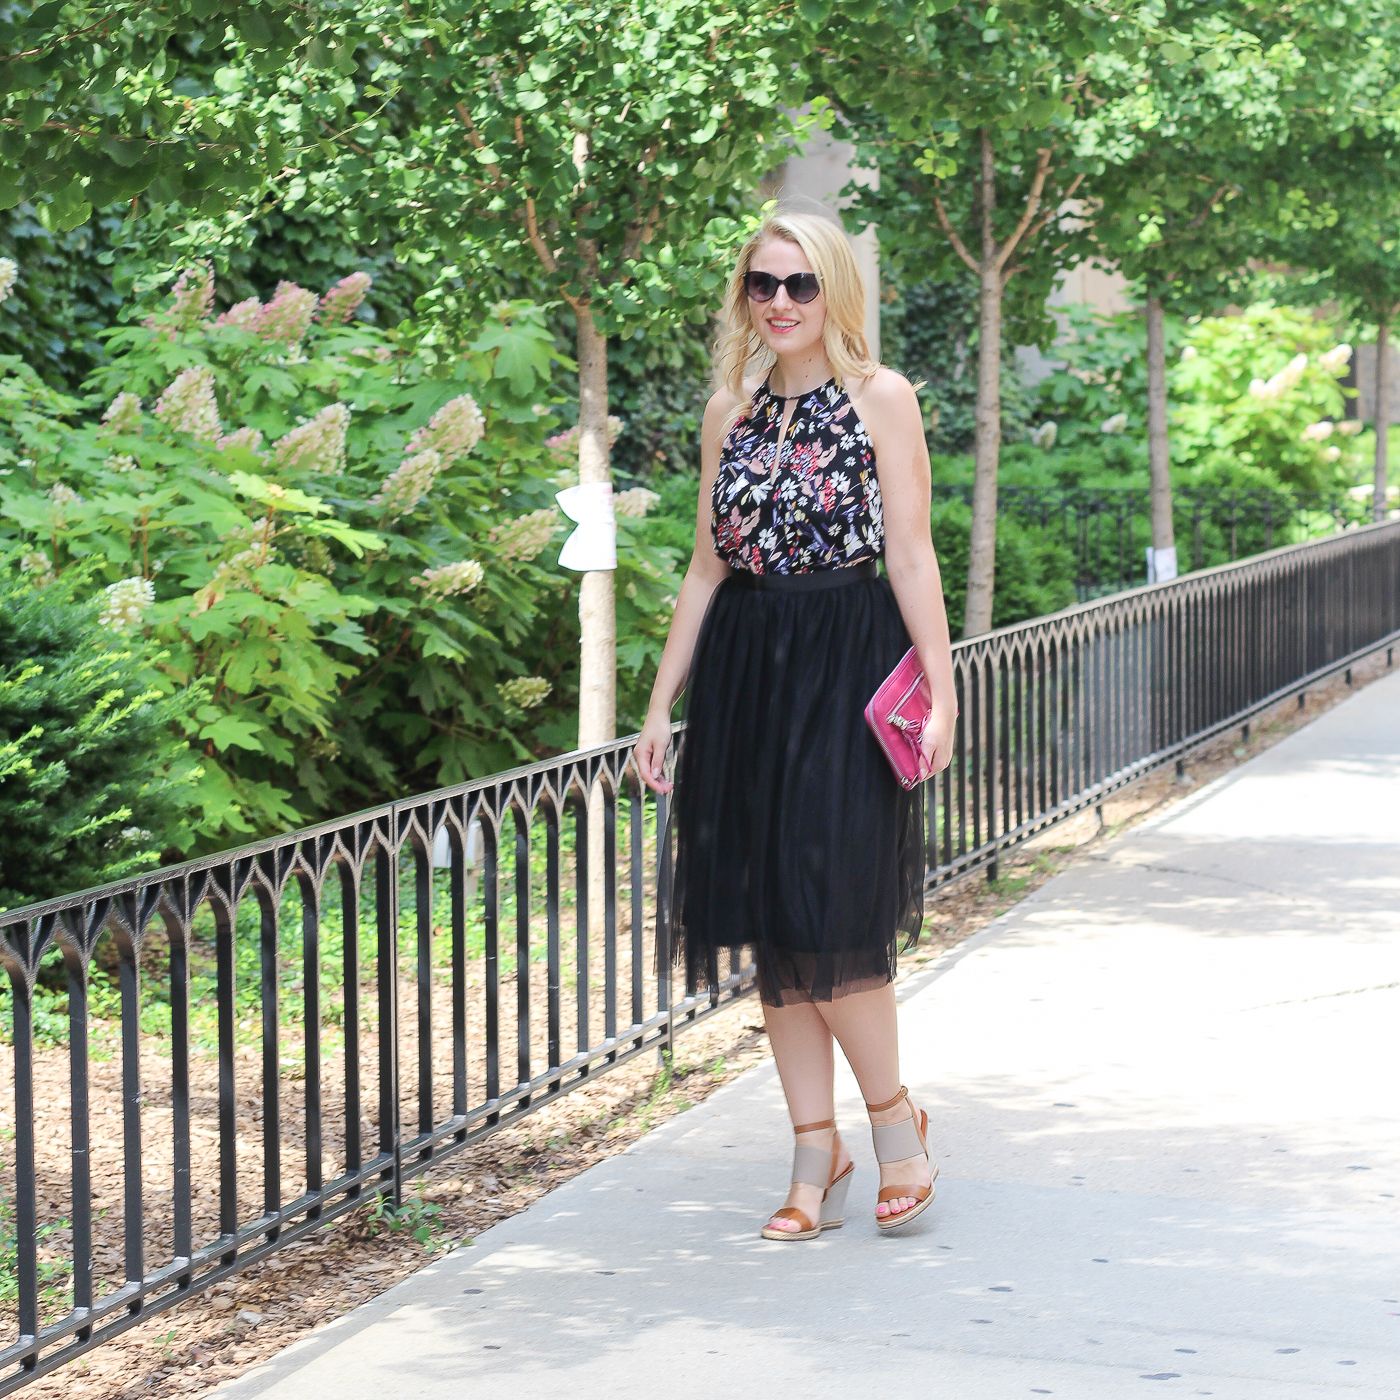 A tulle skirt for under $50 from H&M